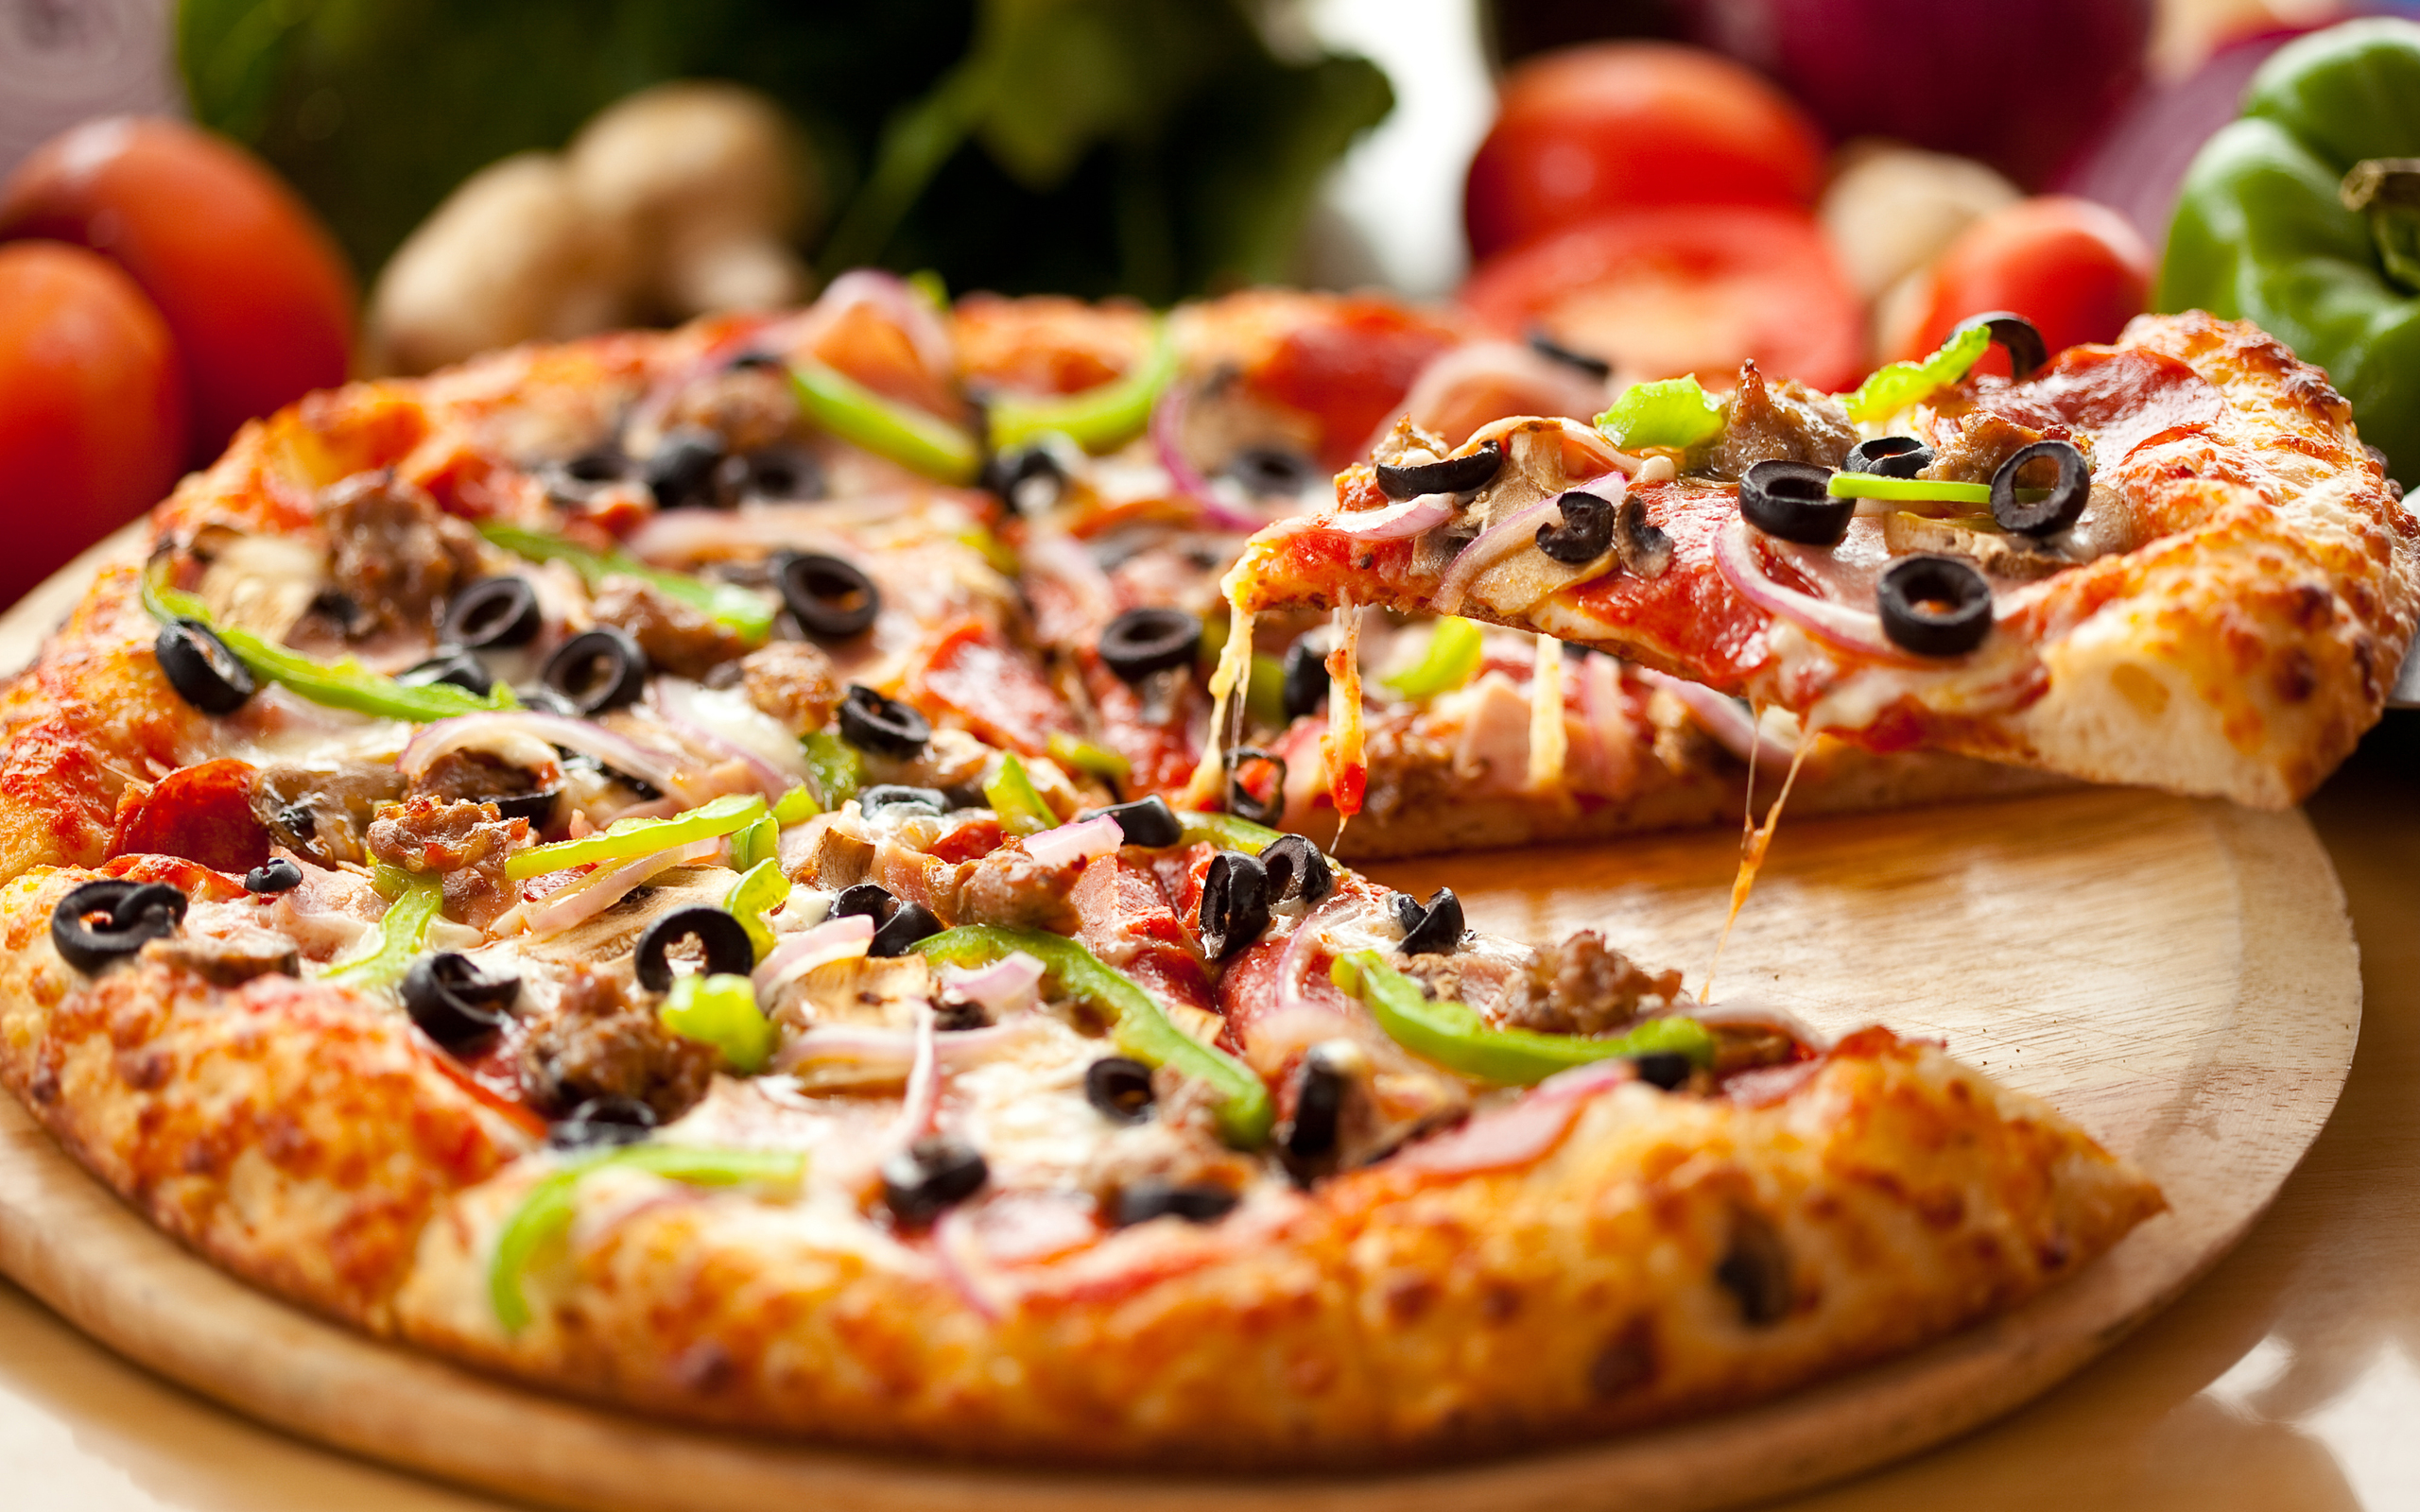 pizza images full hd wallpaper images